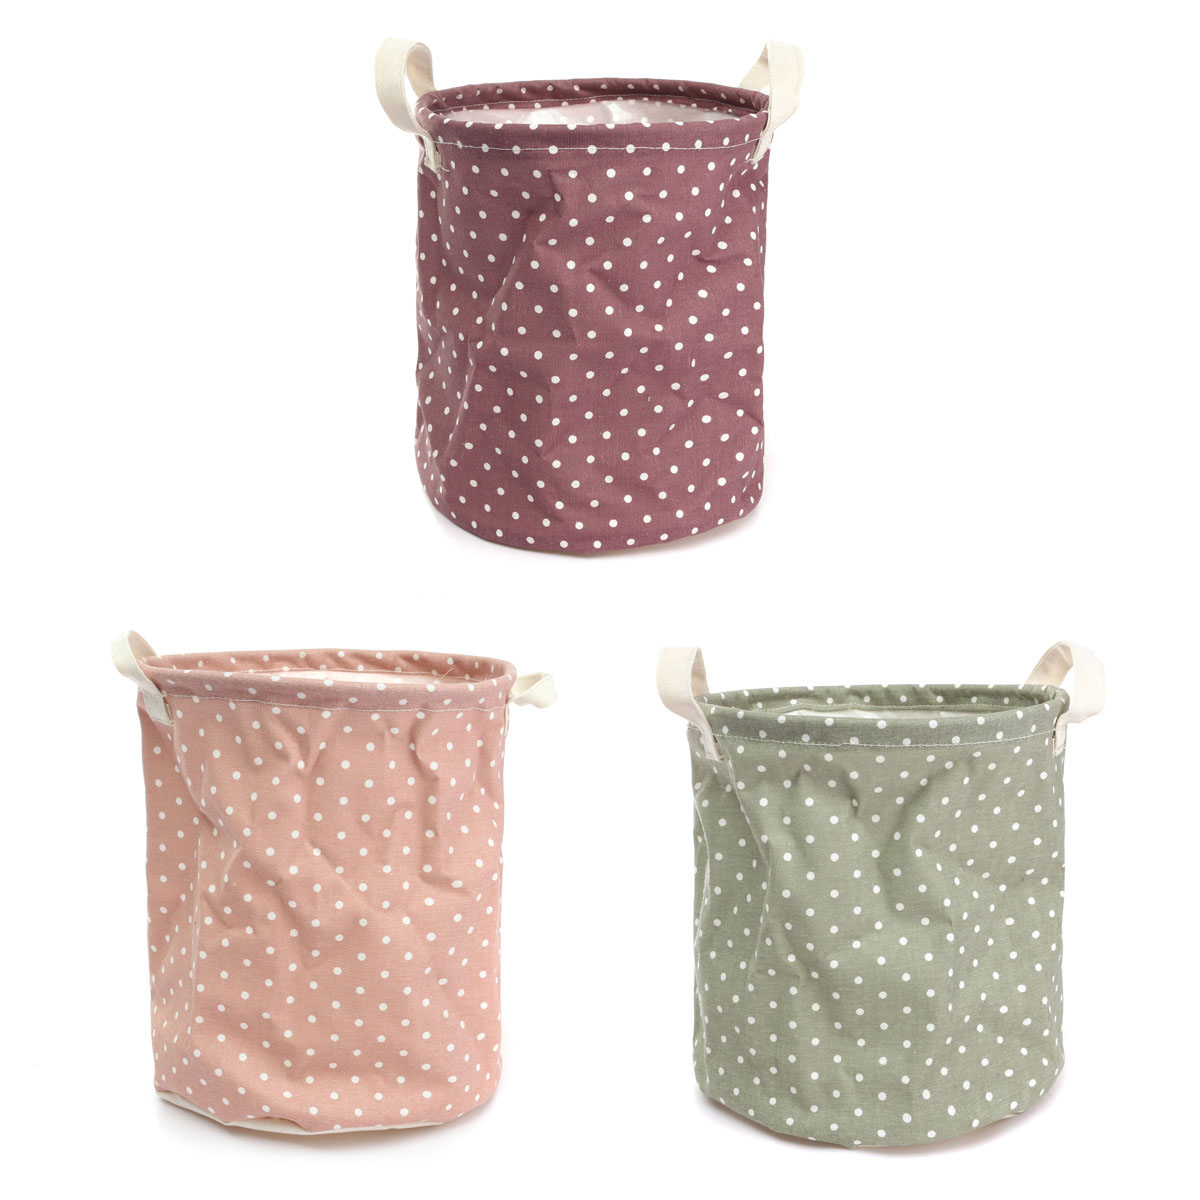 Dirty Laundry Baskets Us 3 8 Wave Dot Dirty Clothes Washing Laundry Basket Cotton Linen Bag Storage Bucket Laundry Barrels Home Fitting 3 Color In Laundry Bags Baskets